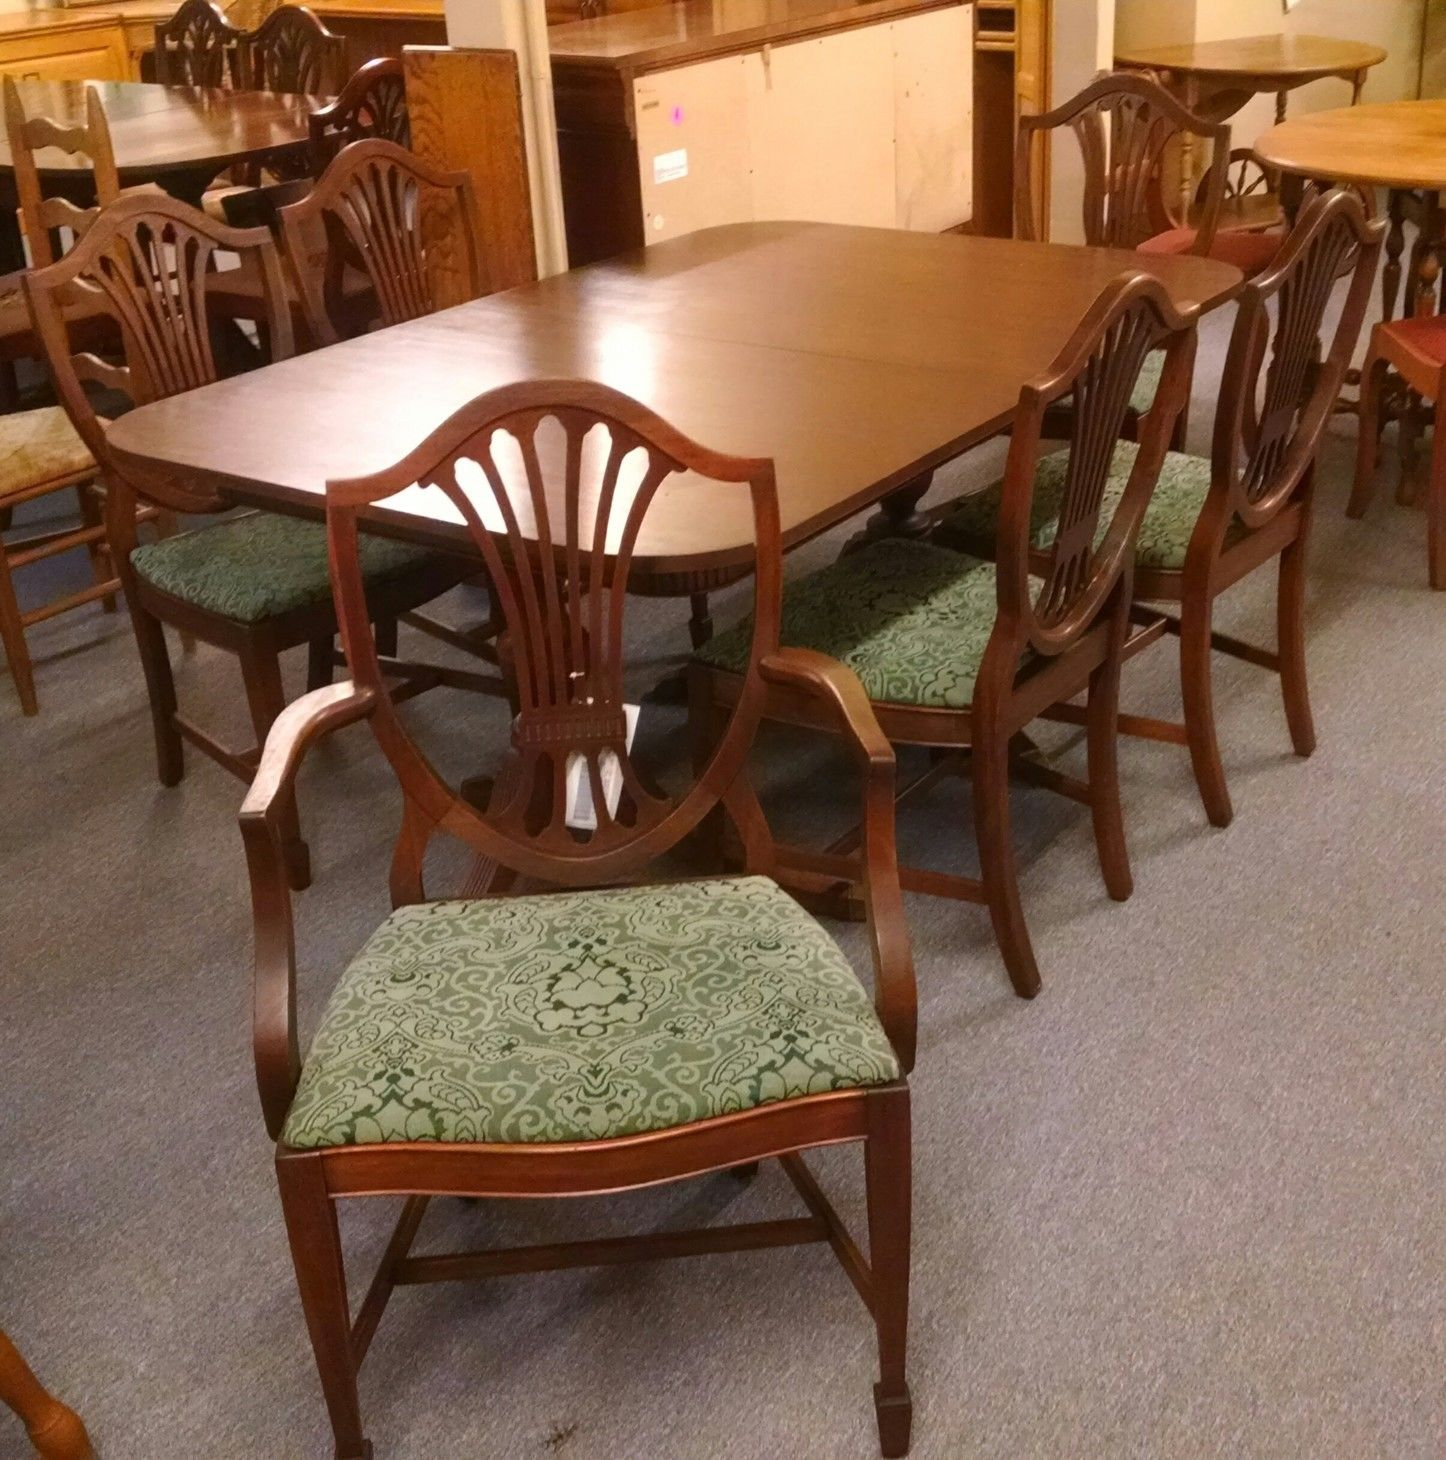 duncan phyfe table w 6 chairs delmarva furniture consignment